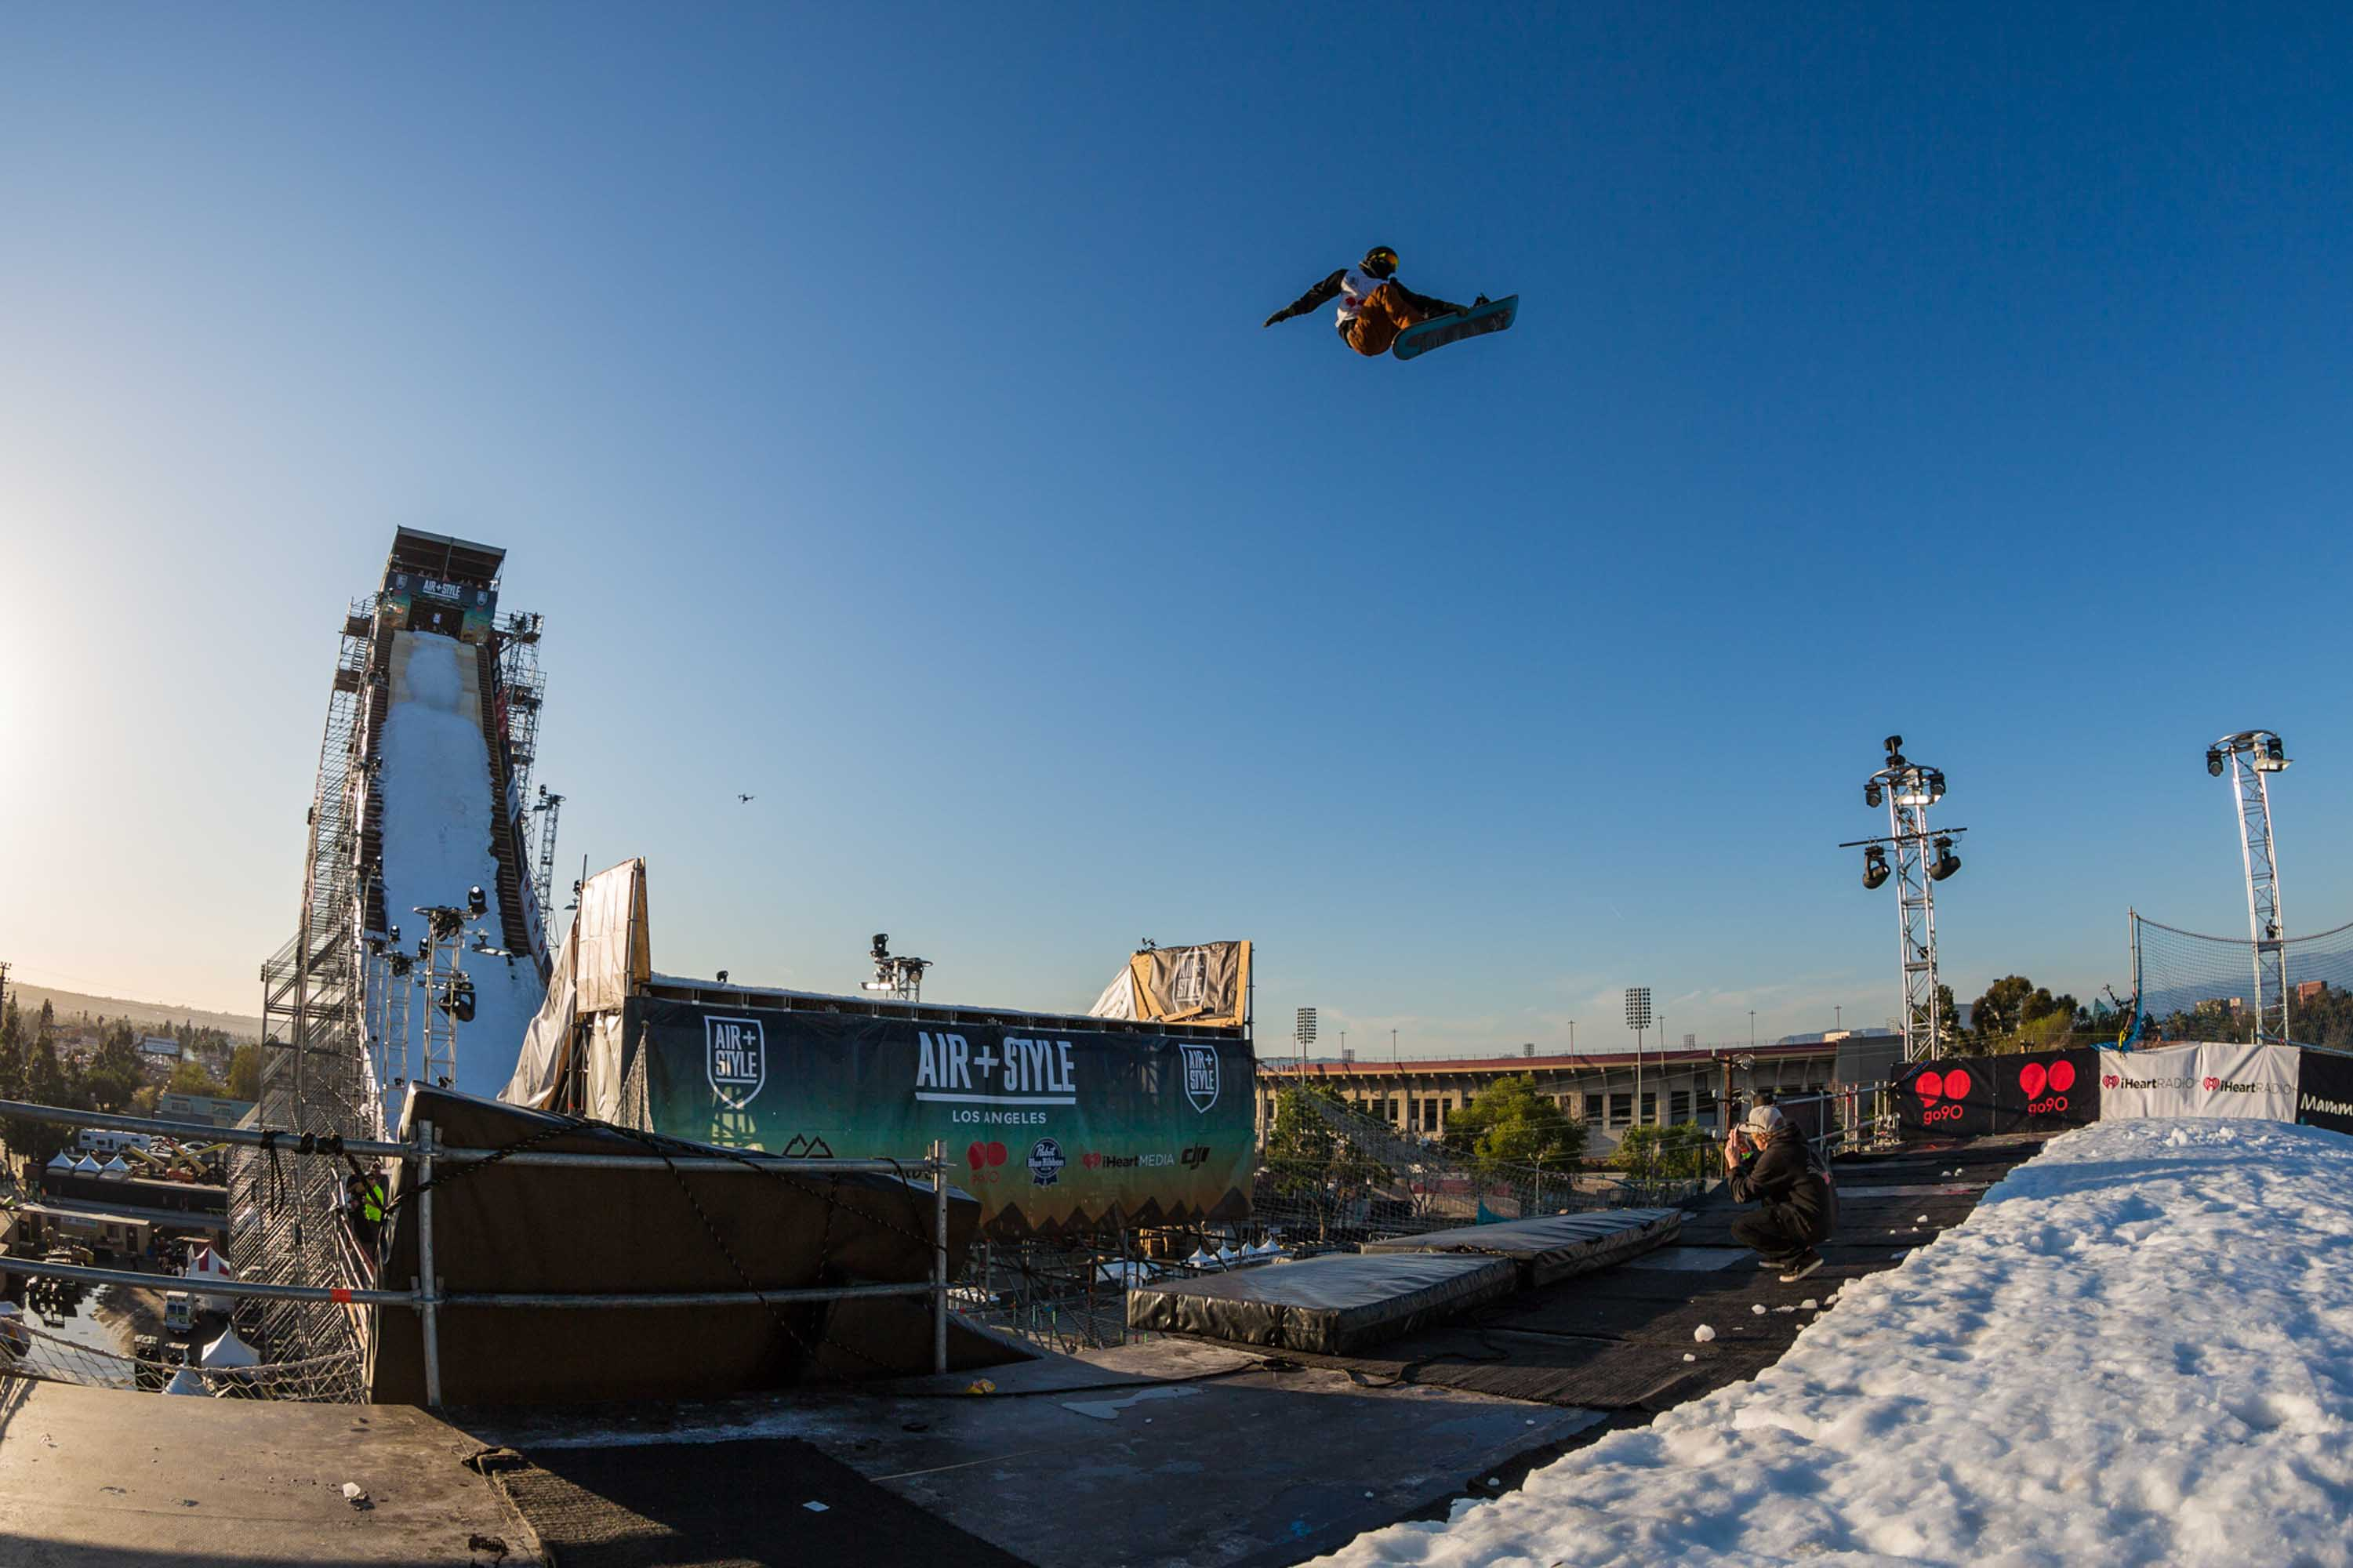 Roope Tonteri competes at Air + Style, held at EXPO Park at the Coliseum in Los Angeles, CA, USA on 20 February, 2016.